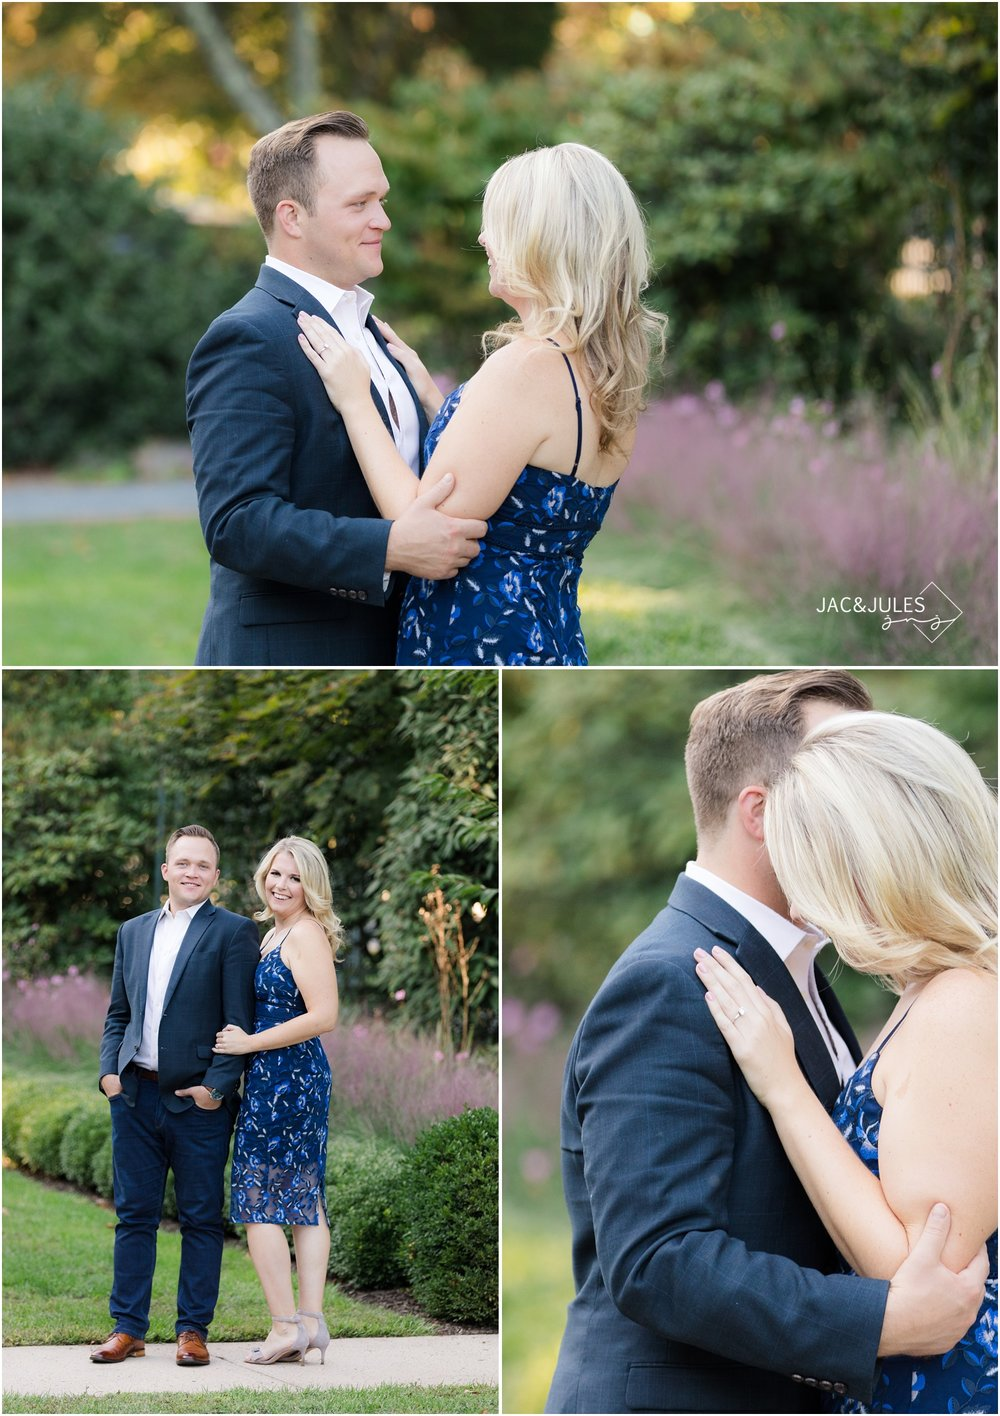 Classy Engagement photos at Van Vleck House and Gardens in Montclair, NJ.